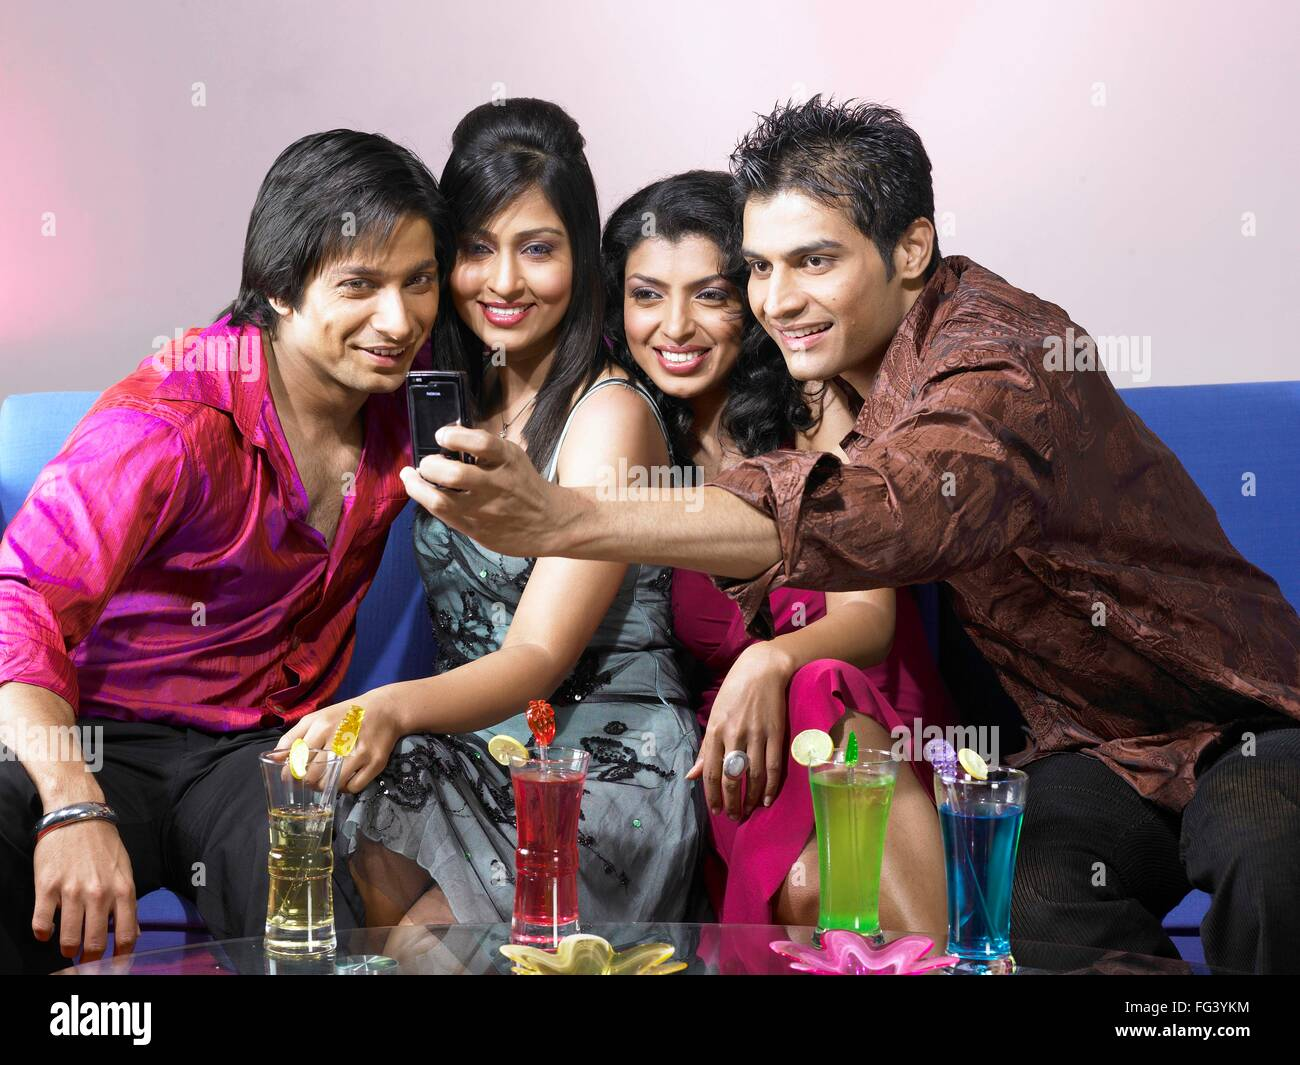 South Asian Indian man taking group photo in mobile celebrating party MR - Stock Image